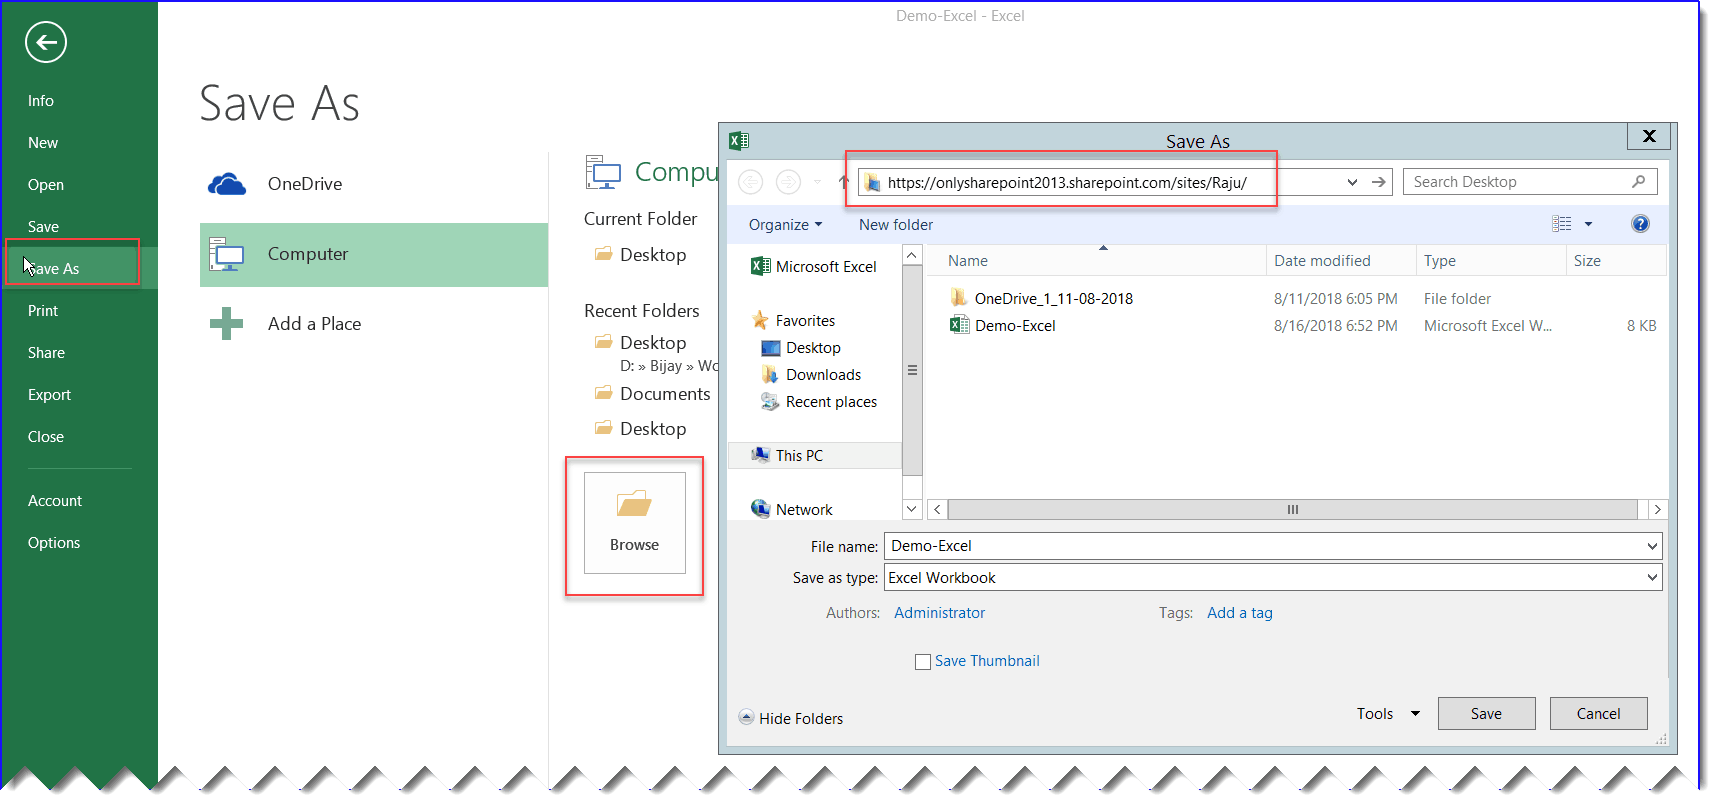 directly save excel file to SharePoint online